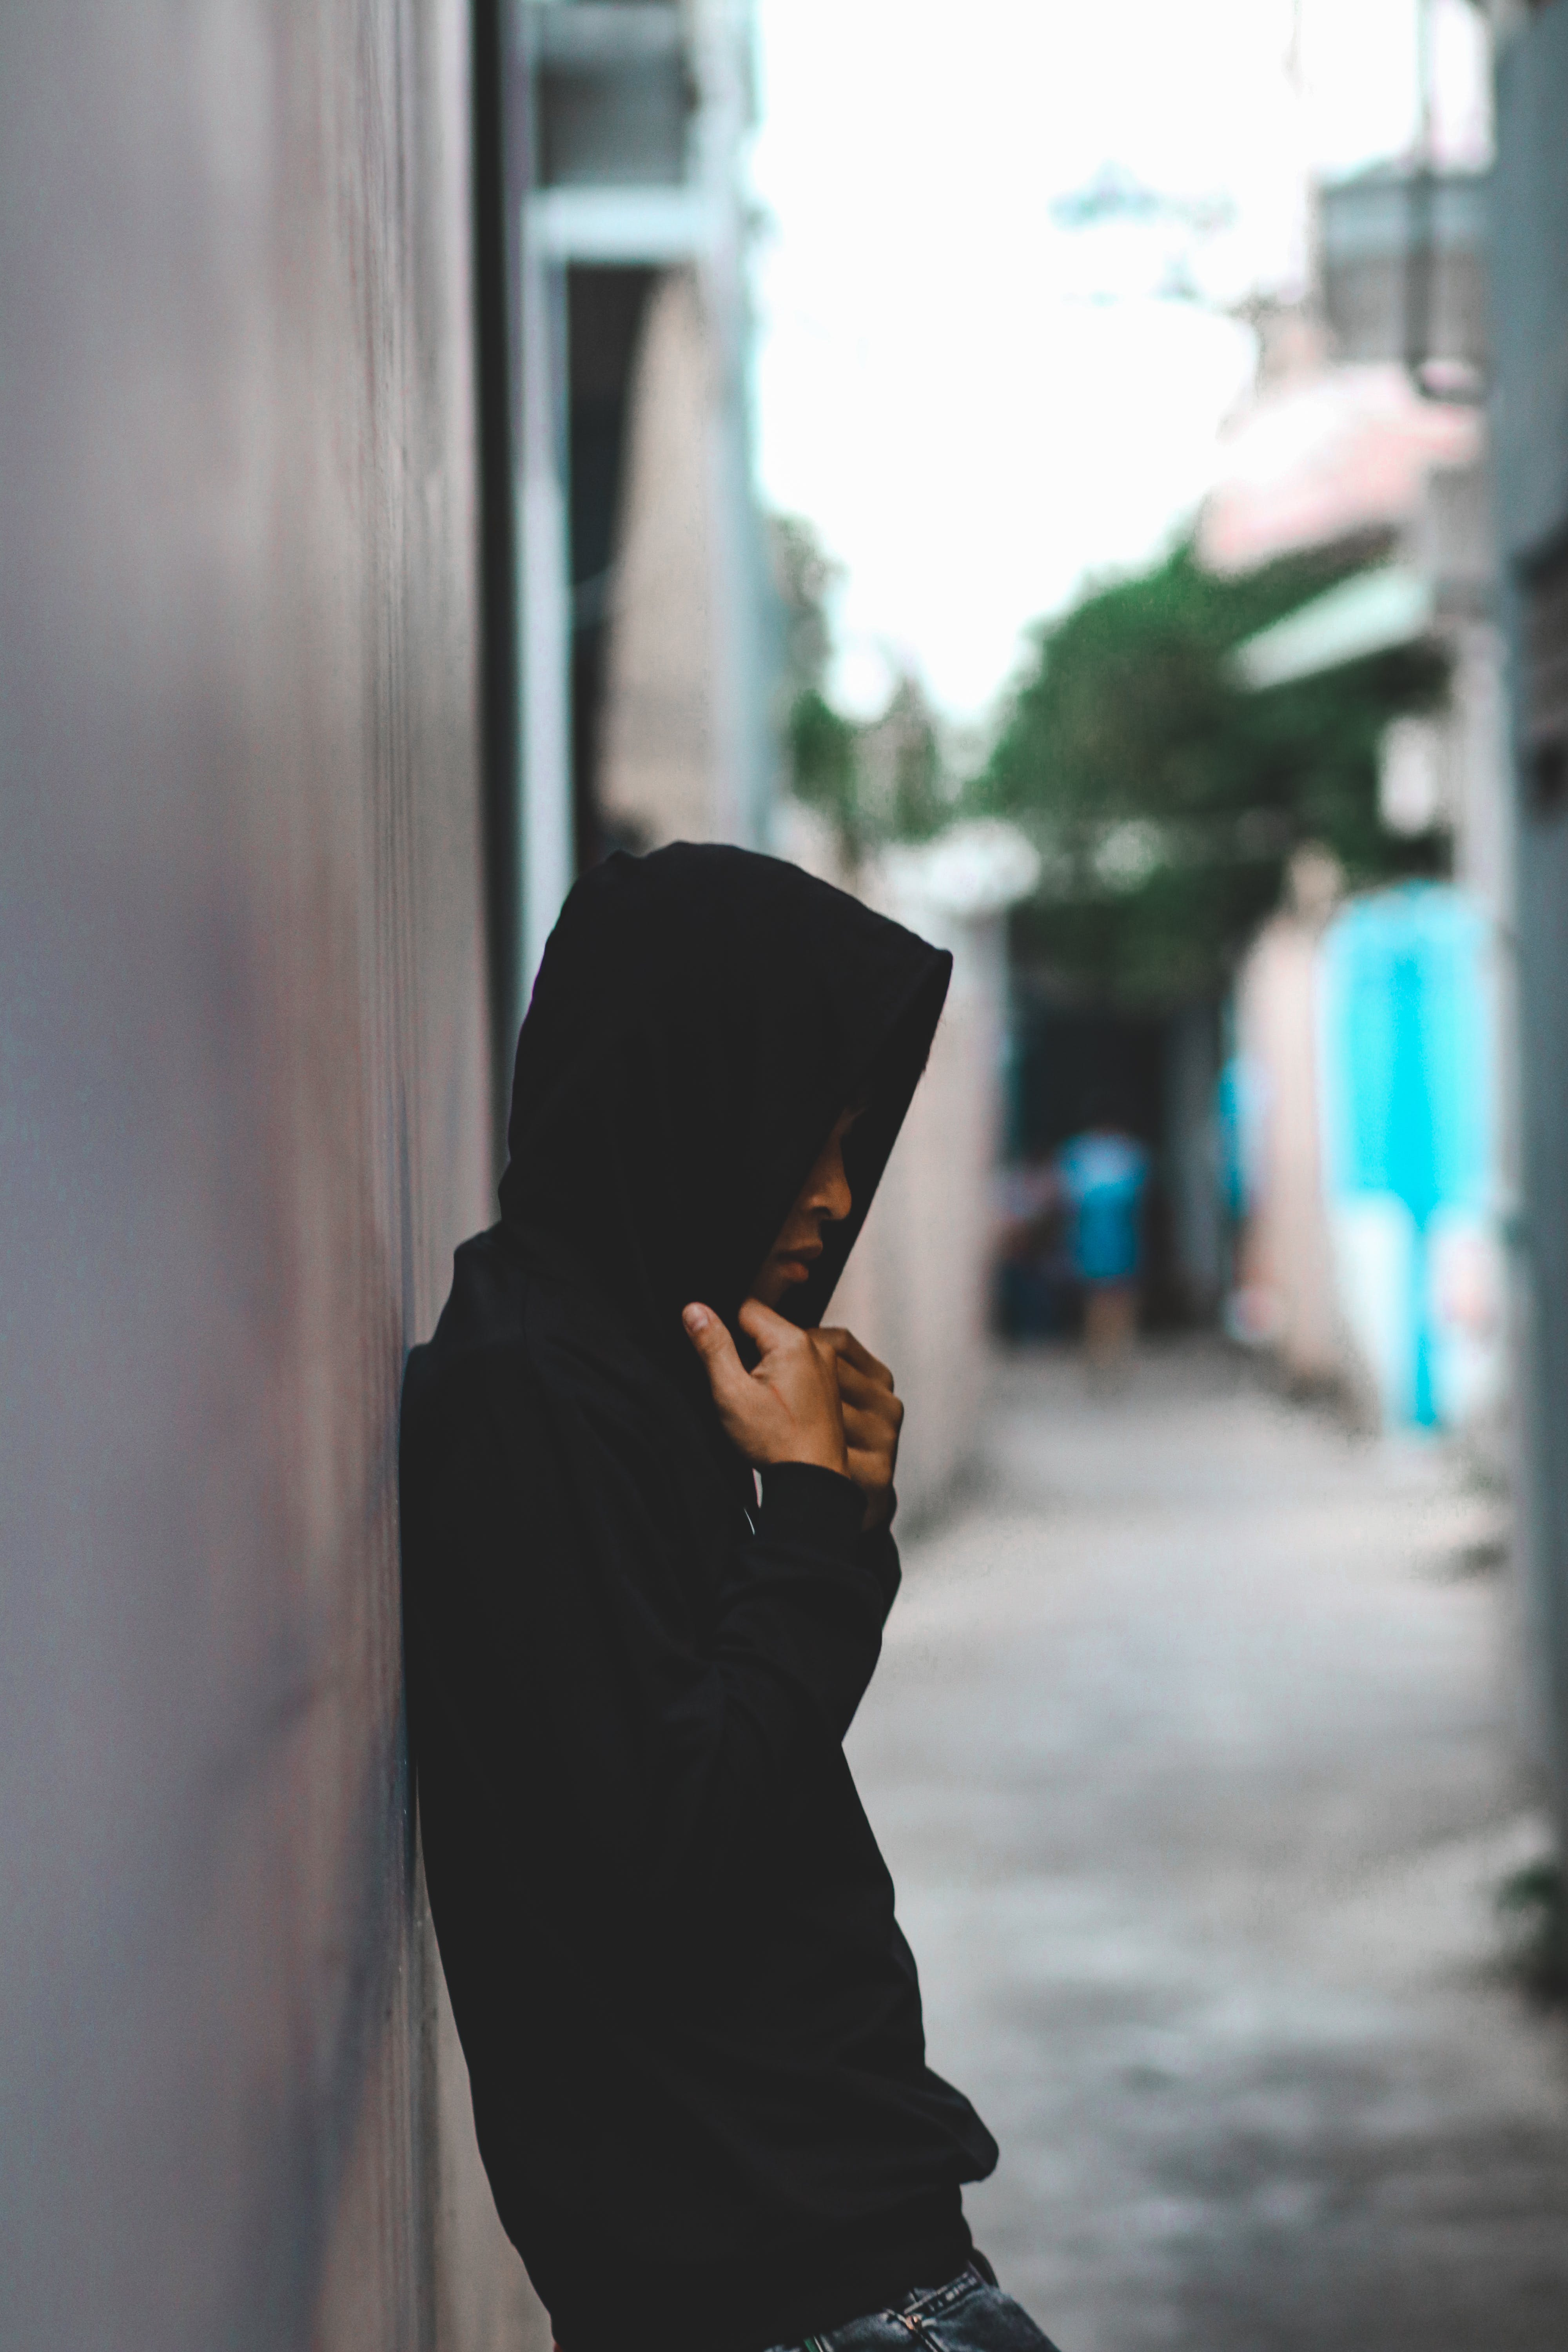 Person Leaning On Wall Wearing Black Hooded Jacket